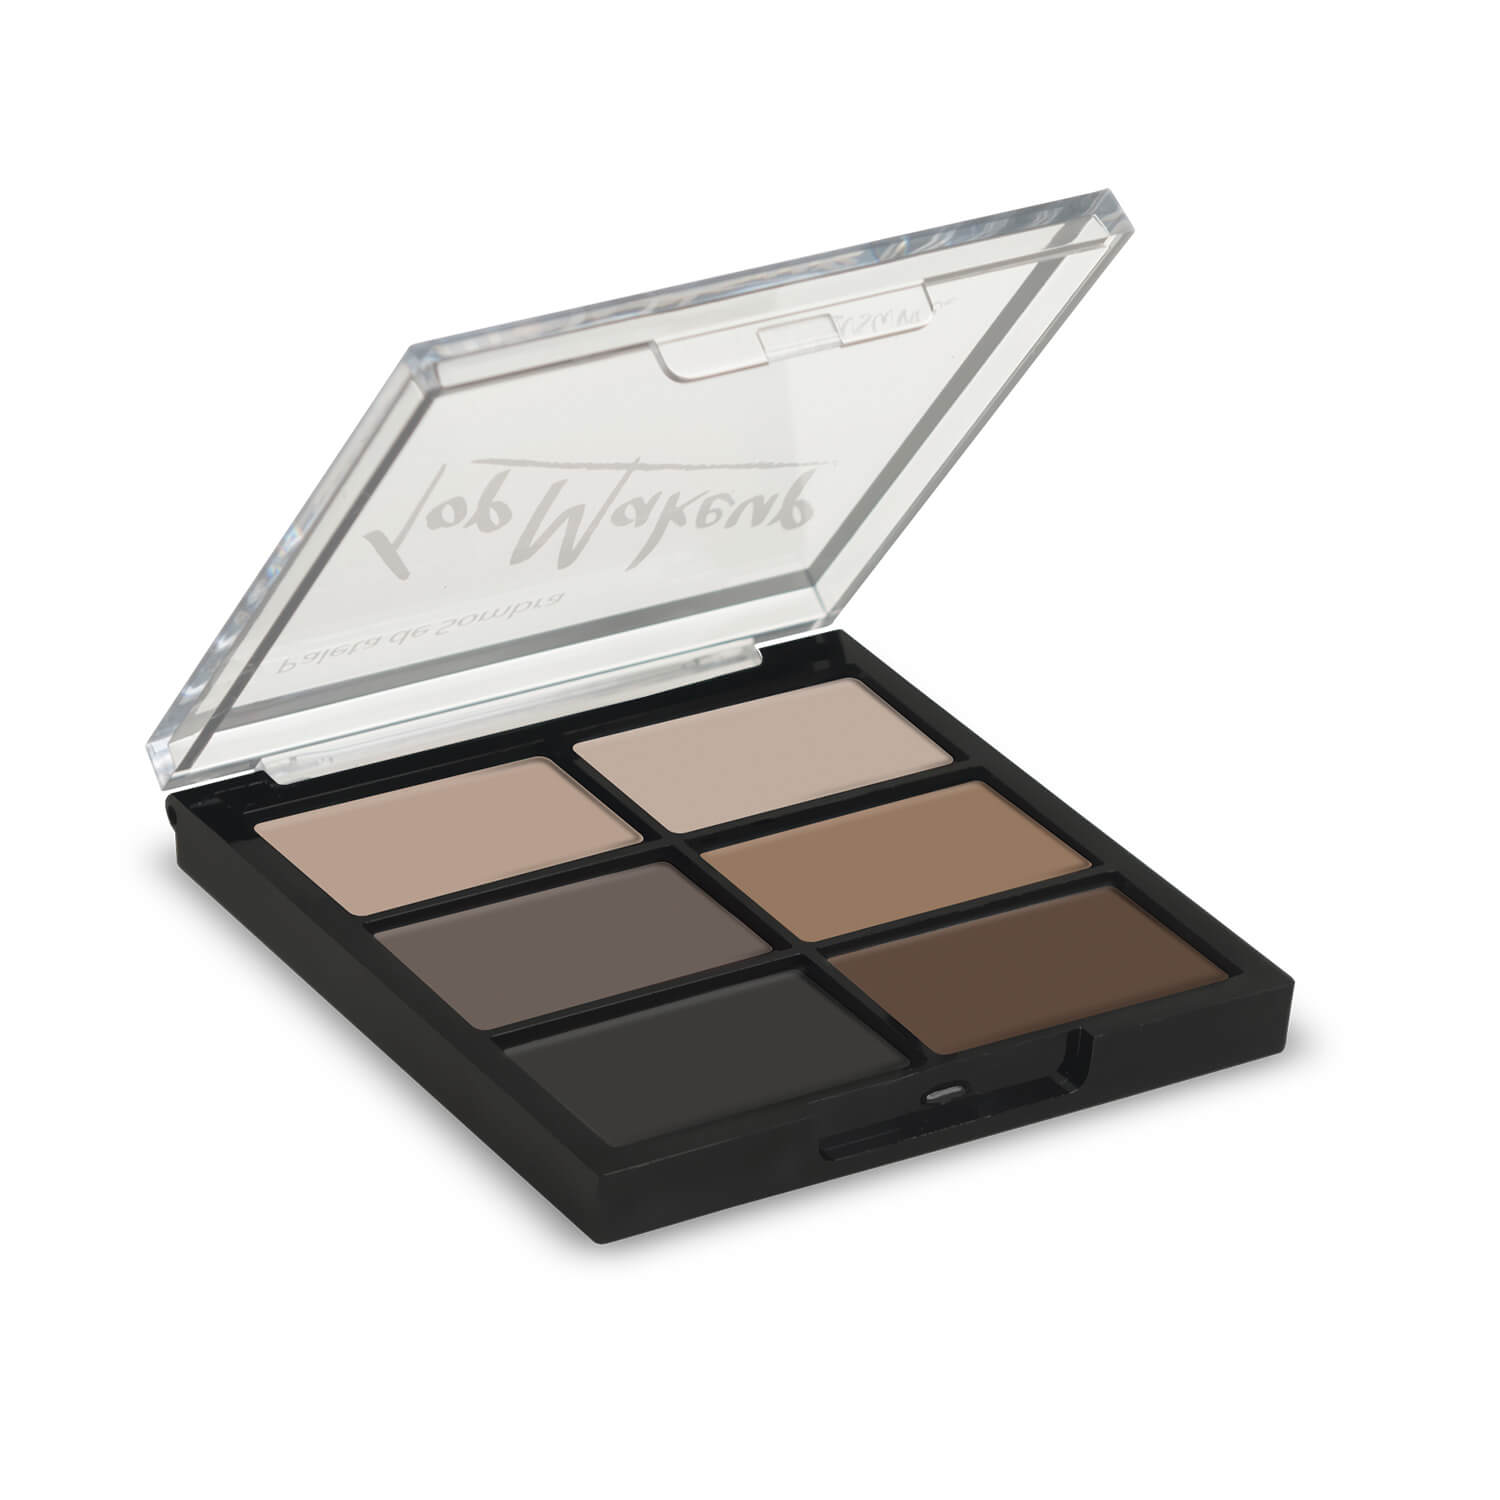 Paleta de Sombras Top Makeup